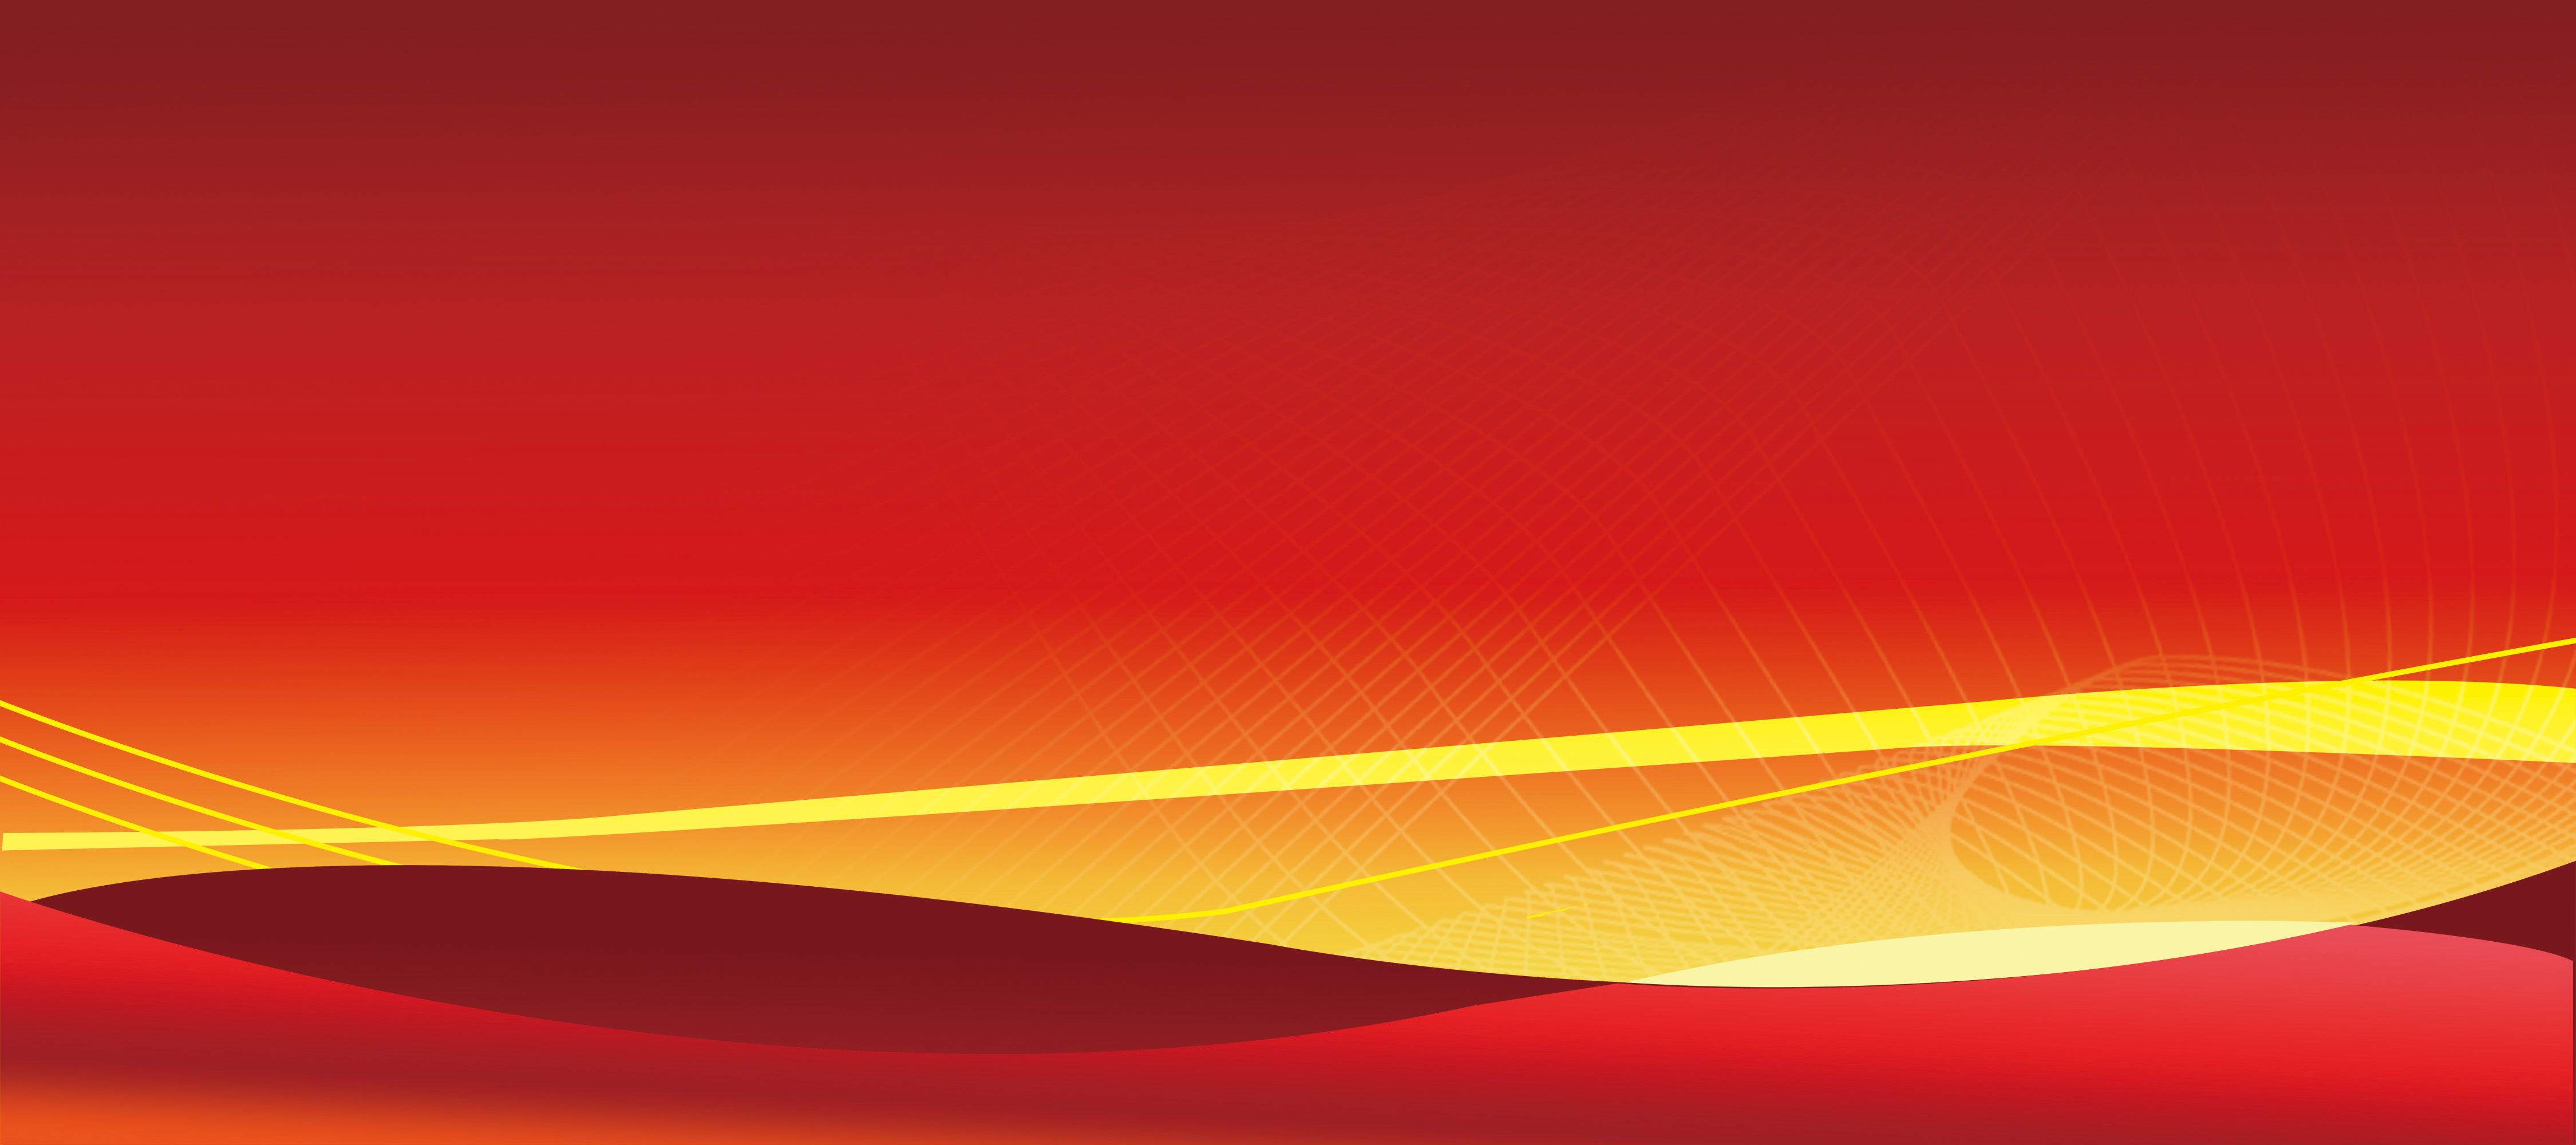 Free Fall Bc Nature Wallpaper Gala Background Red Joyous Yellow Background Image For